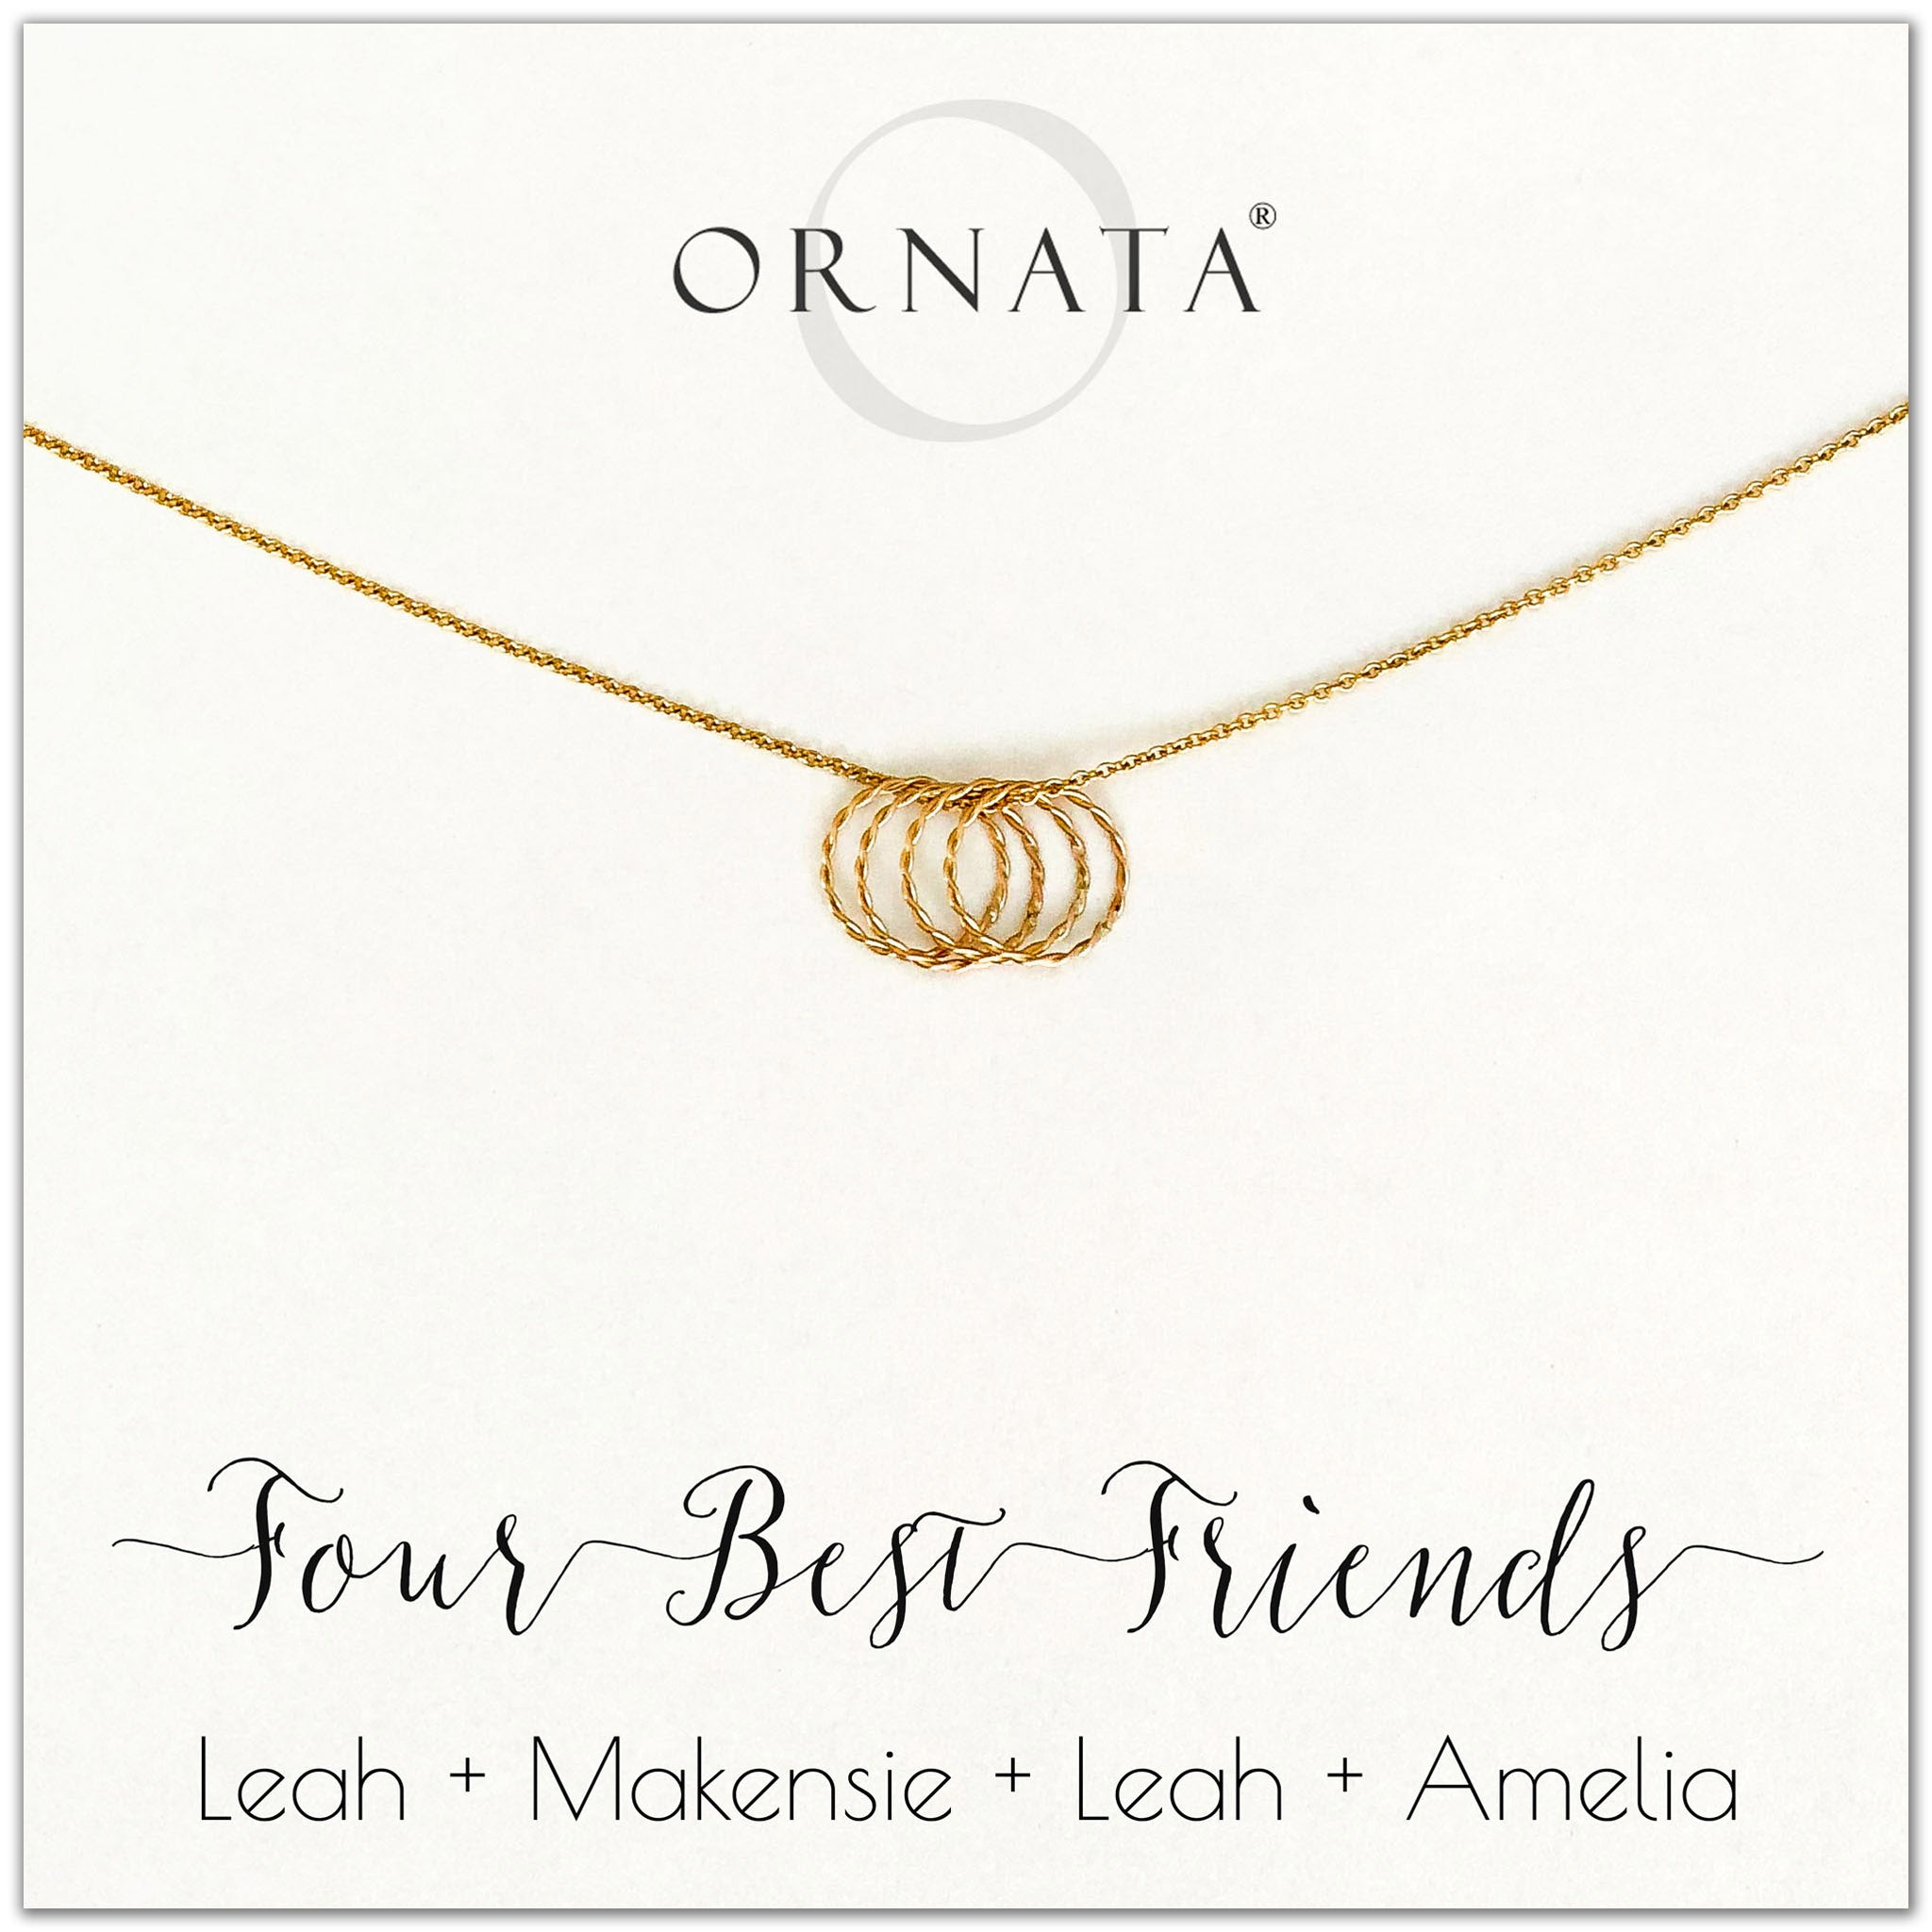 Personalized gold necklaces for four best friends. Our 14 karat gold filled custom jewelry is a perfect gift for a sister or best friend.